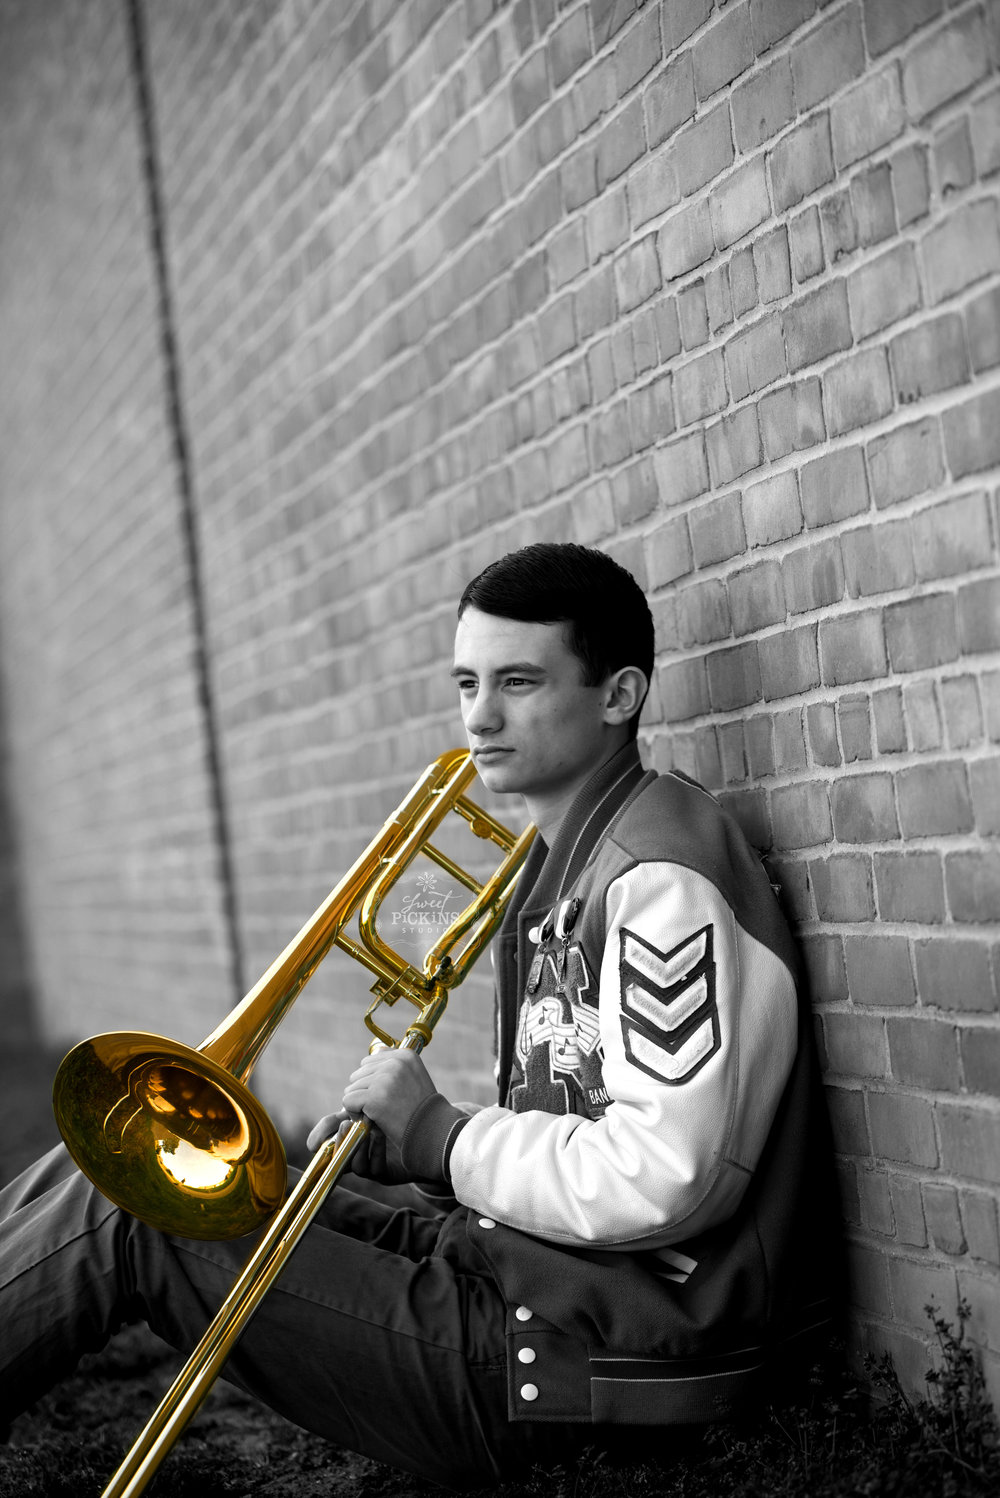 Sweet Pickins Studio Senior Photo Art | Senior Guy with Trombone in Black and White